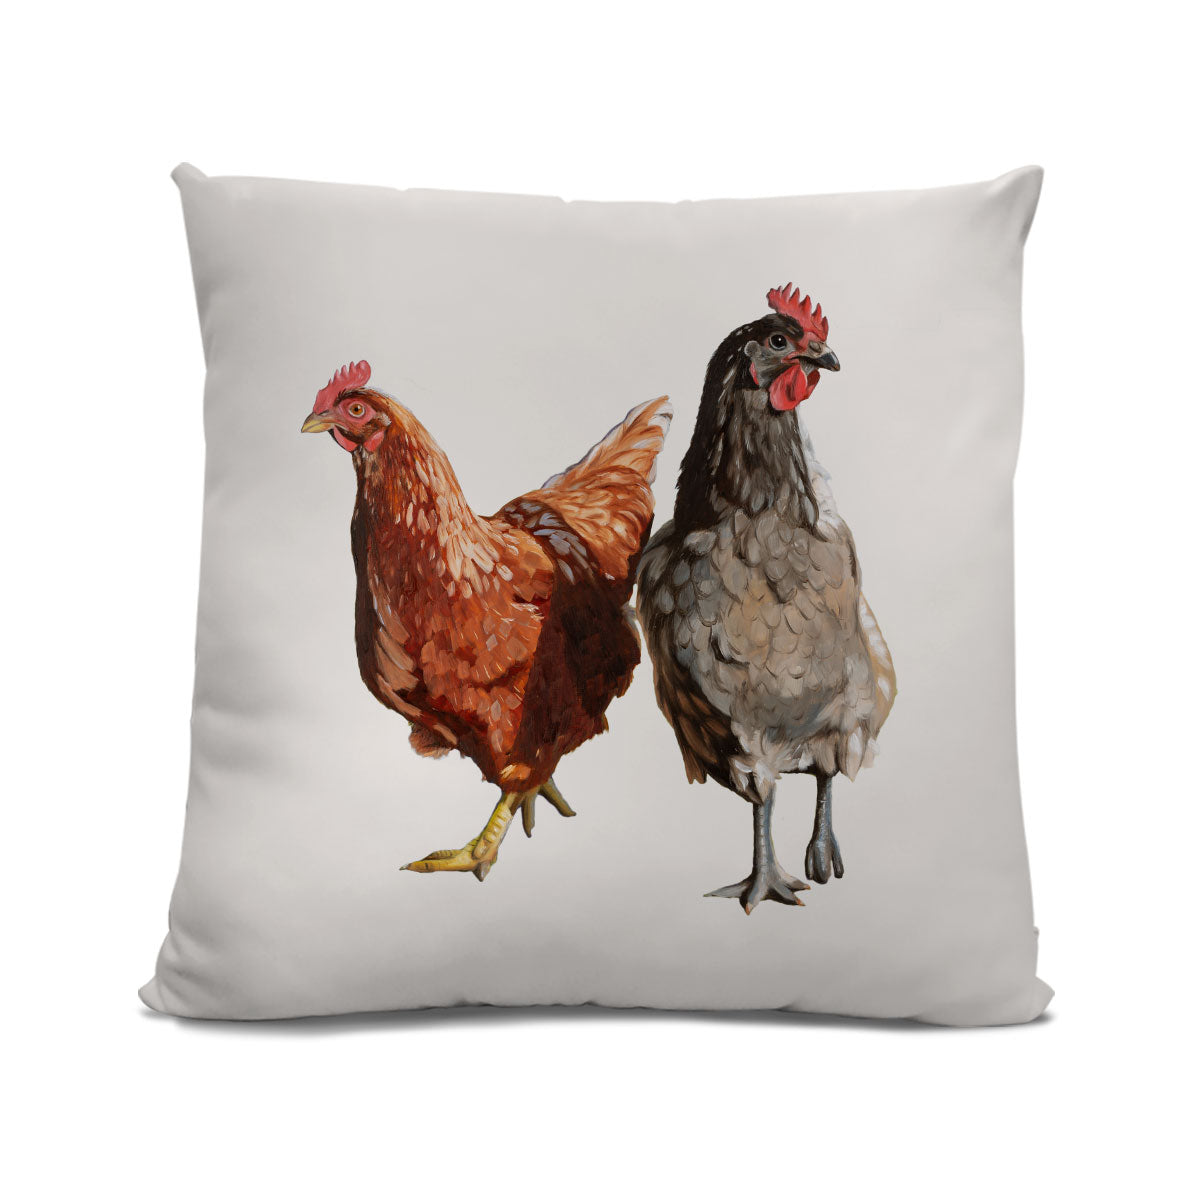 Chicken cushion light